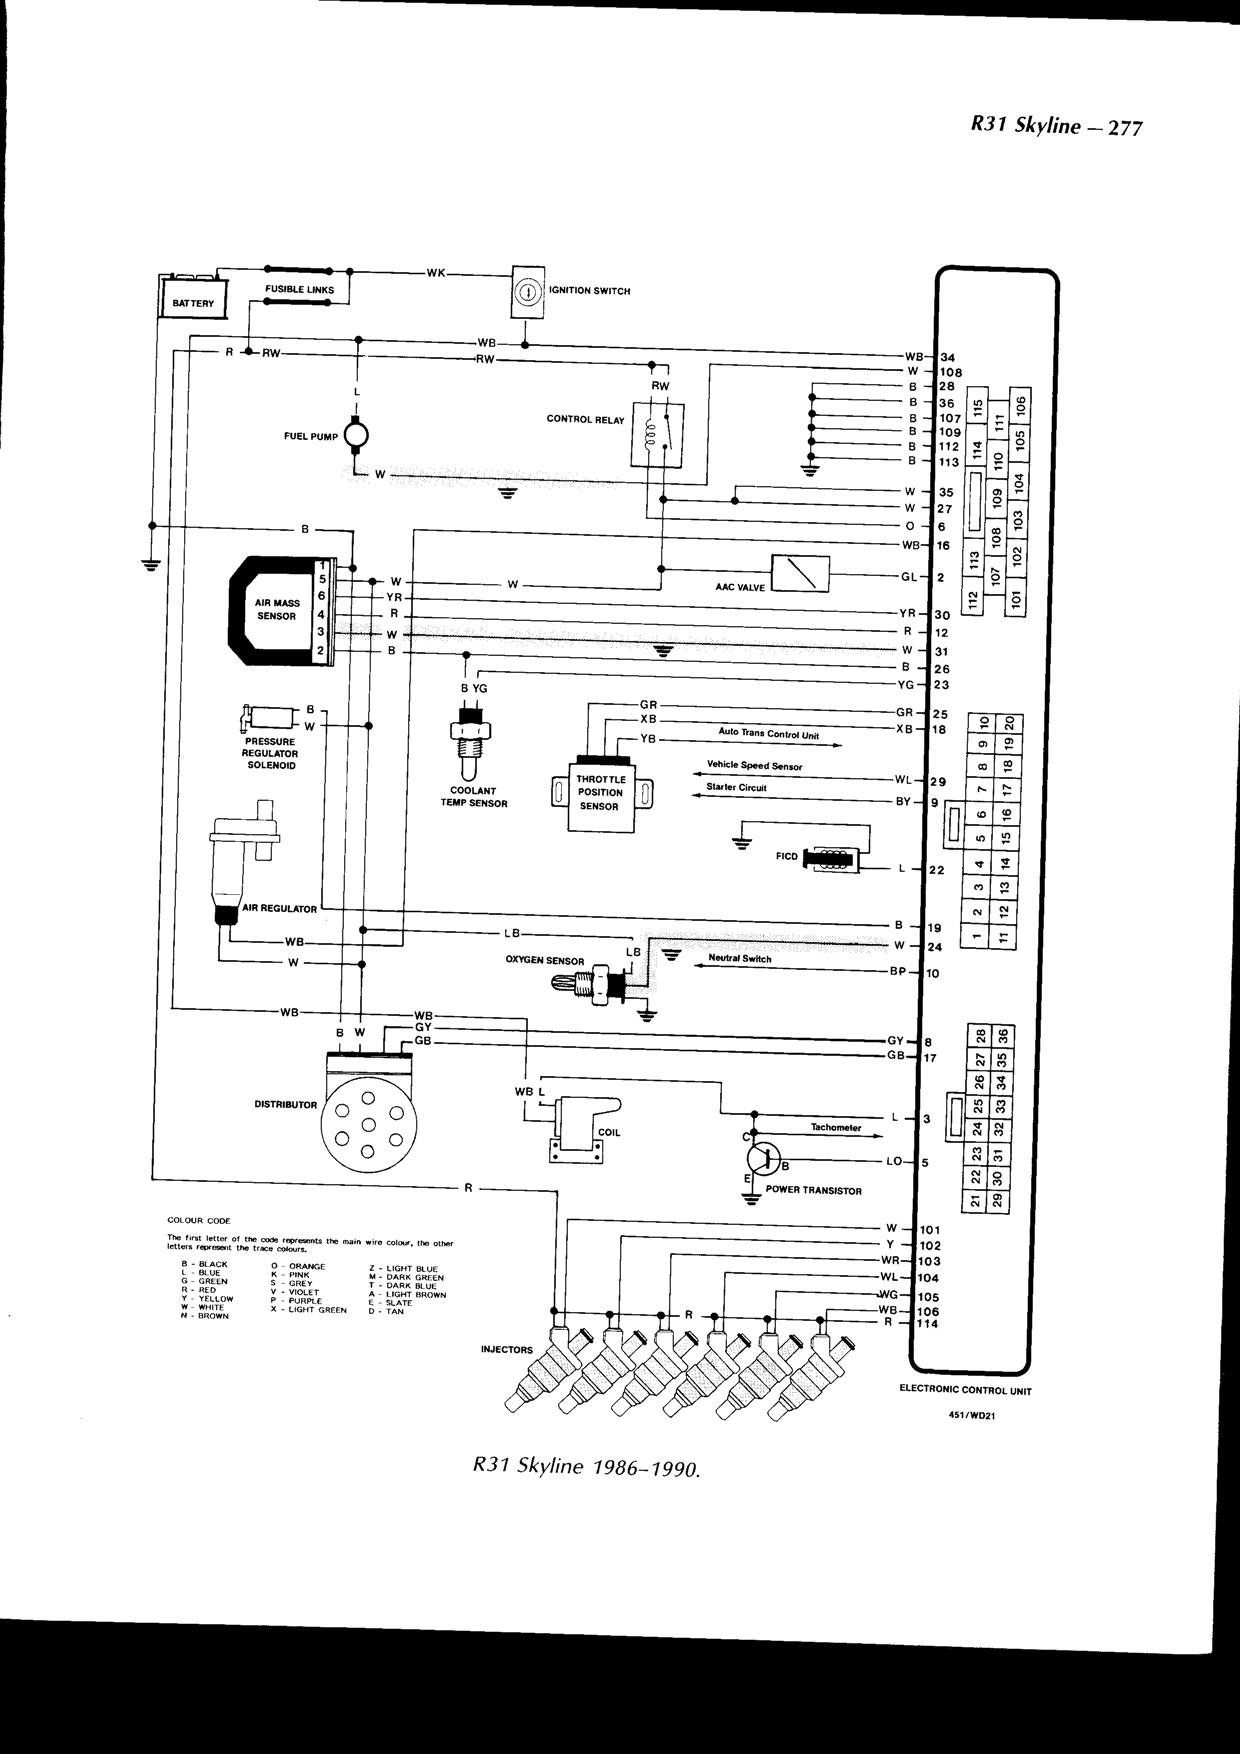 nissan schematic diagram 1400 bakkie wiring diagram electrical circuit diagram  diagram  1400 bakkie wiring diagram electrical